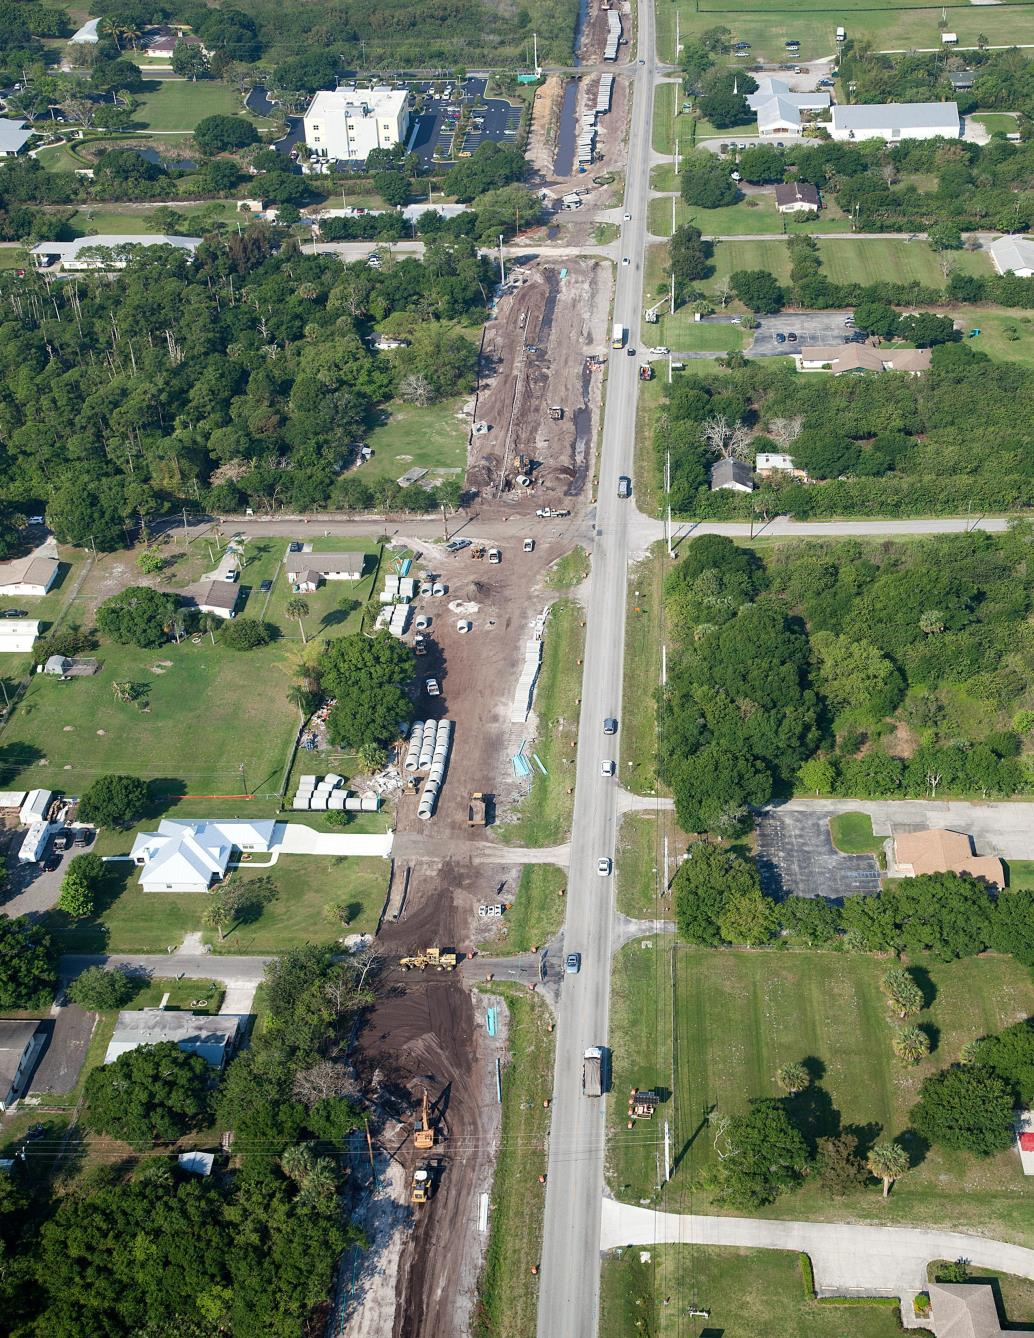 Aerials_008___3-18-15__Midway_Rd_looking_west_from__1309_00_to_1283_00